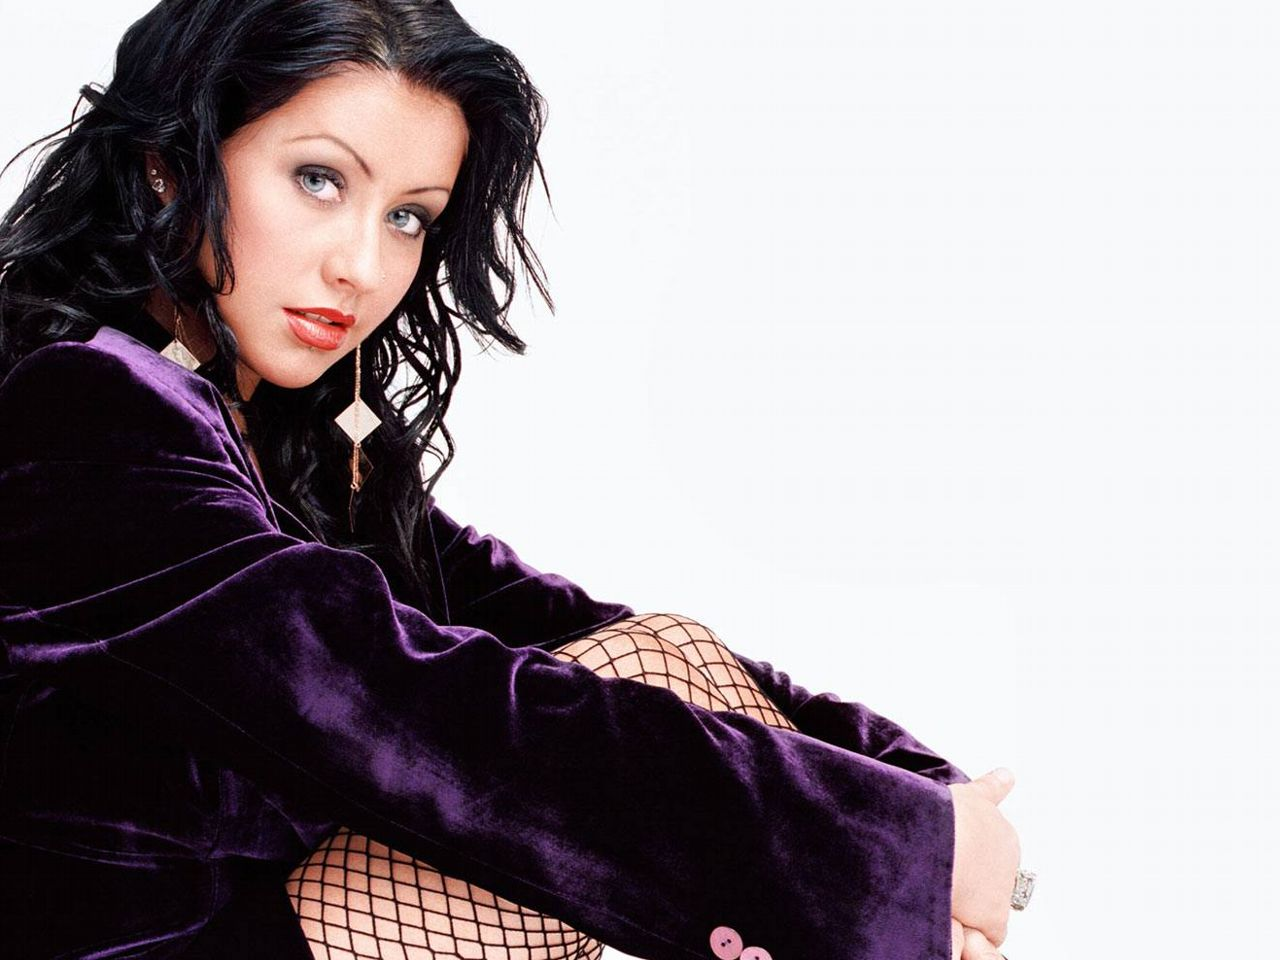 Christina Aguilera Wallpaper and Background Image 1280x960 ID 1280x960